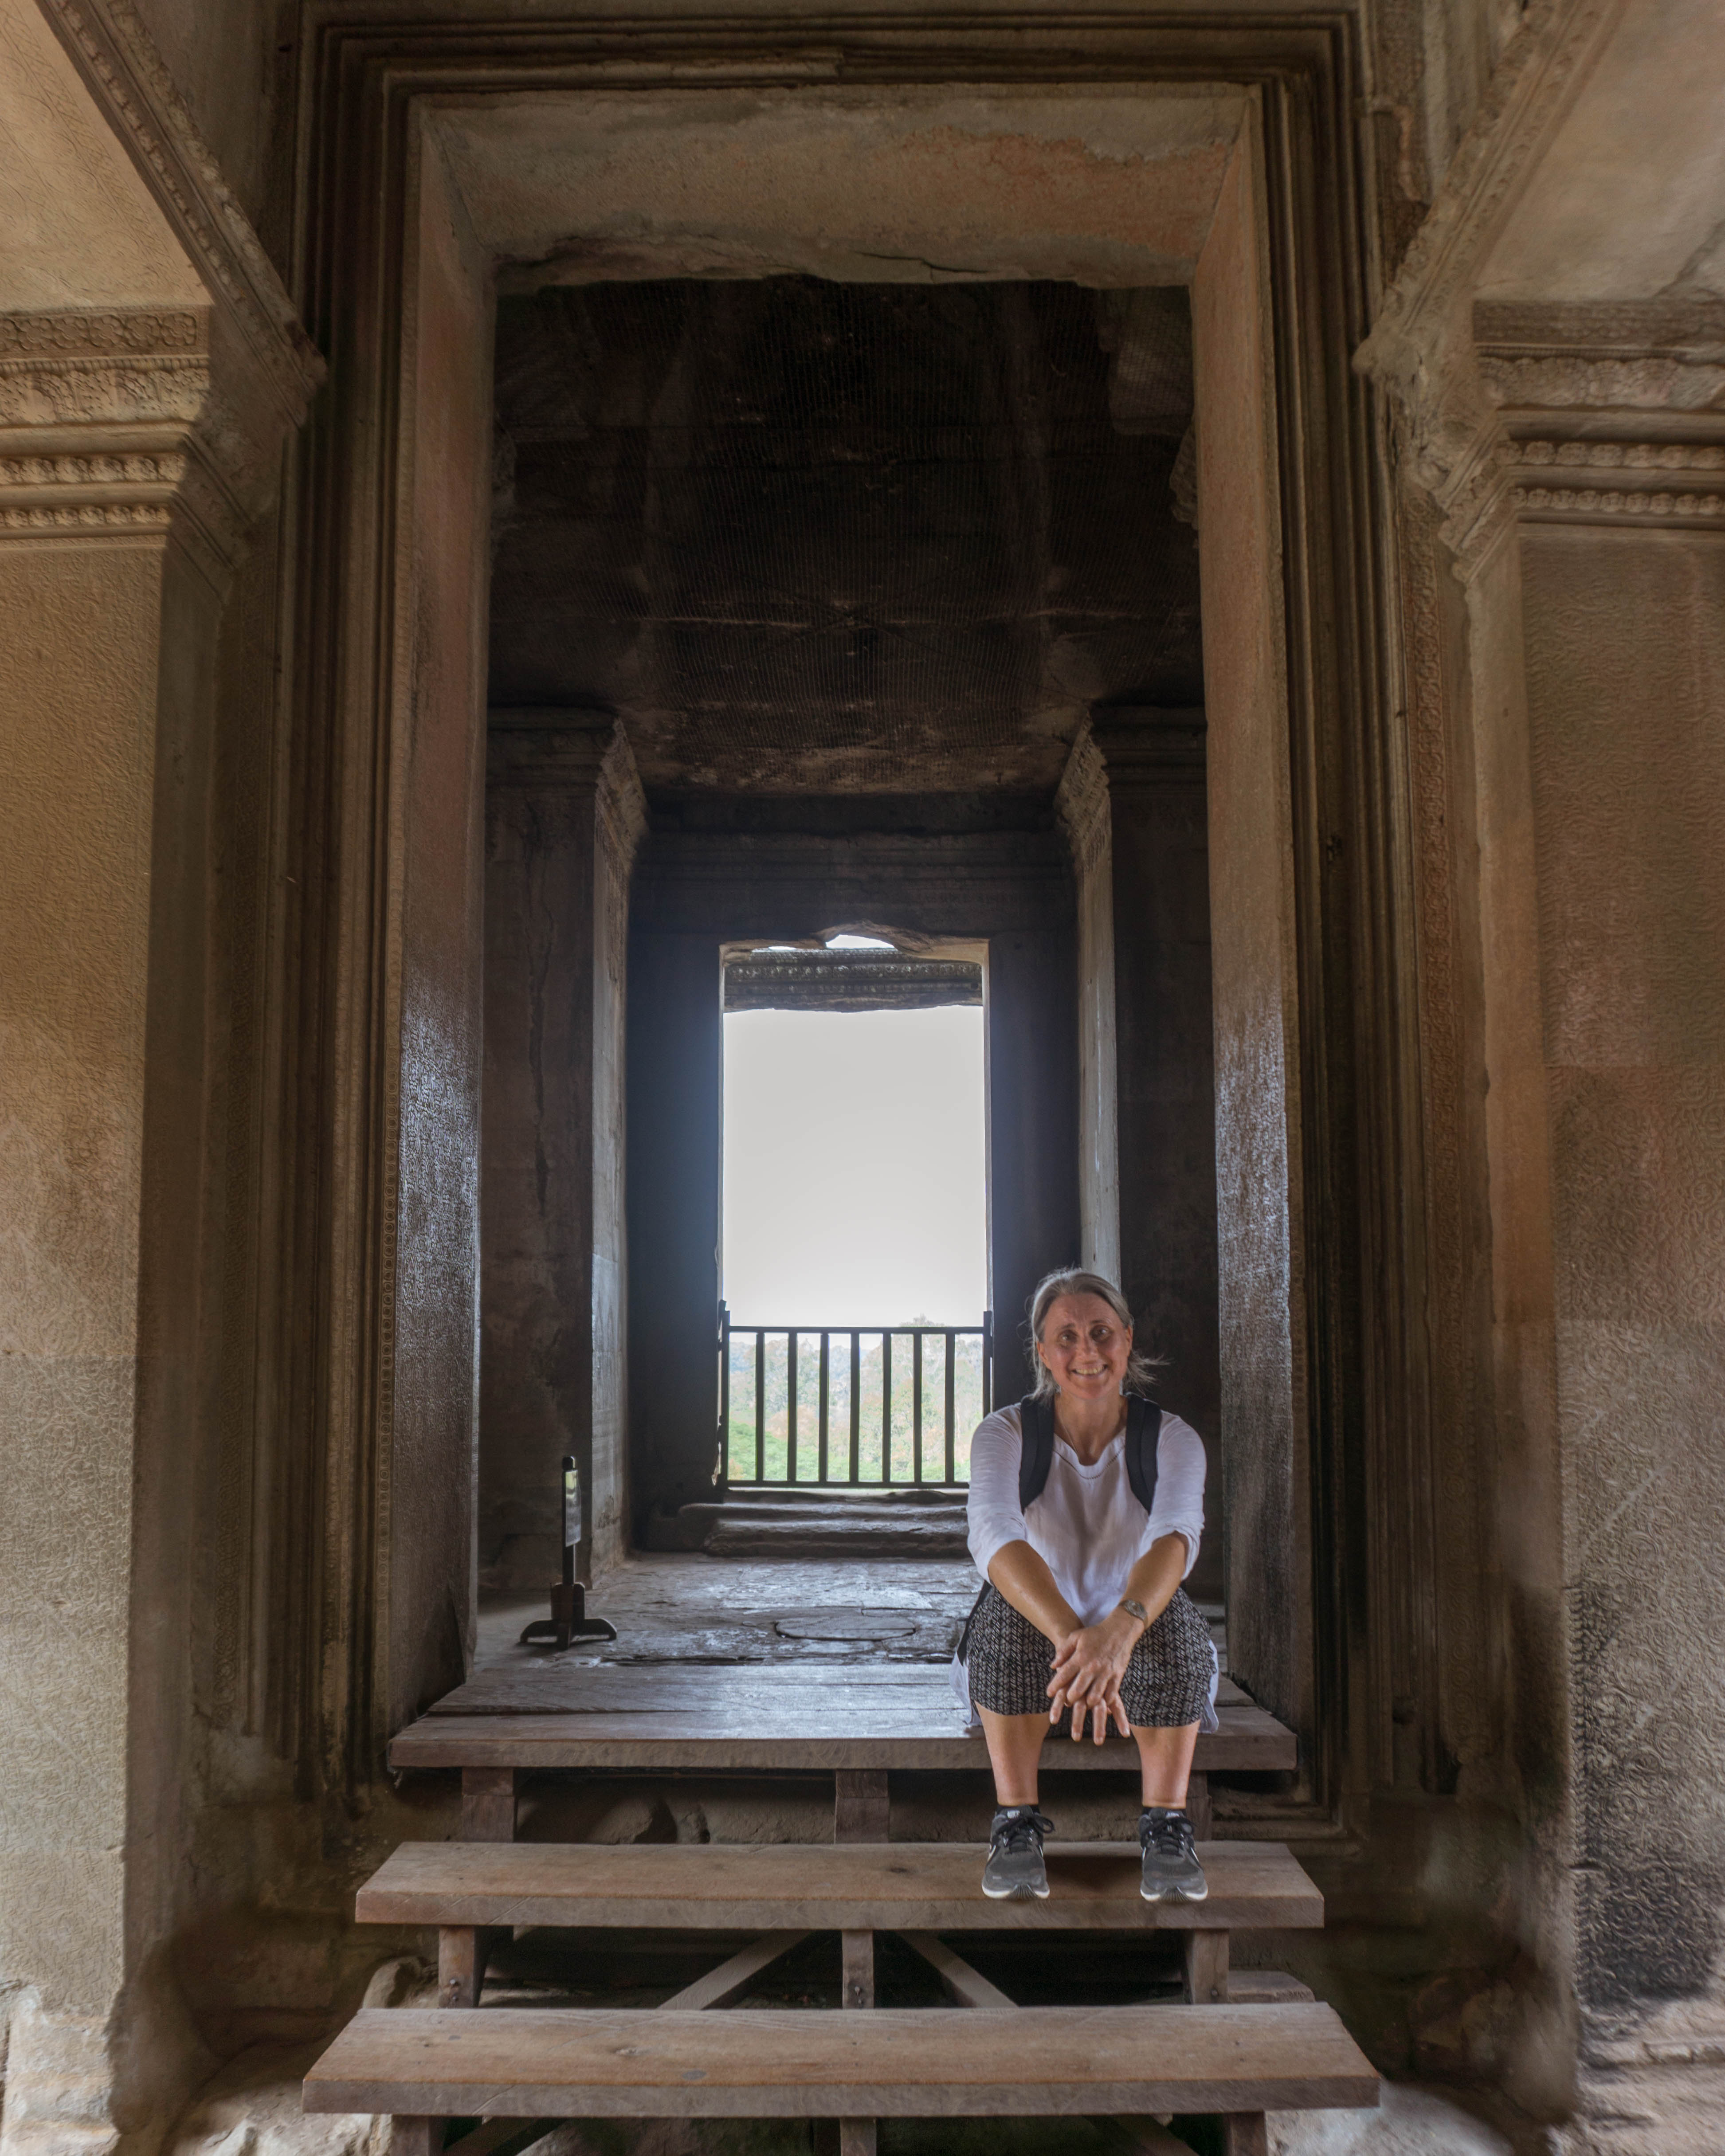 temple cambodia siem reap photo journal Angkor wat